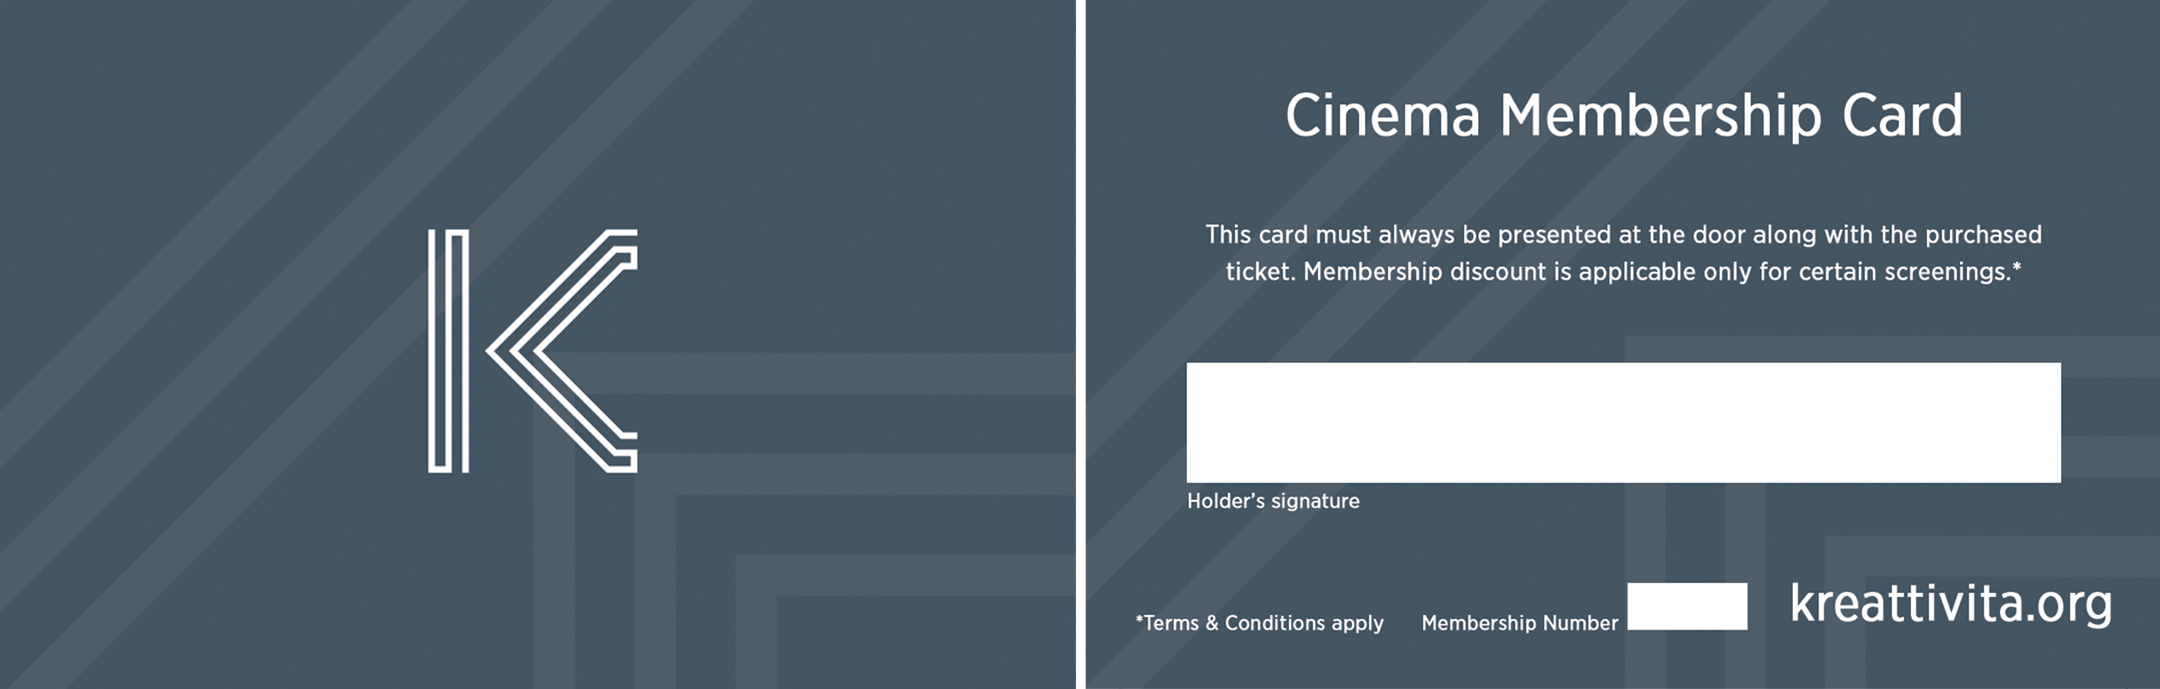 Cinema Membership Card